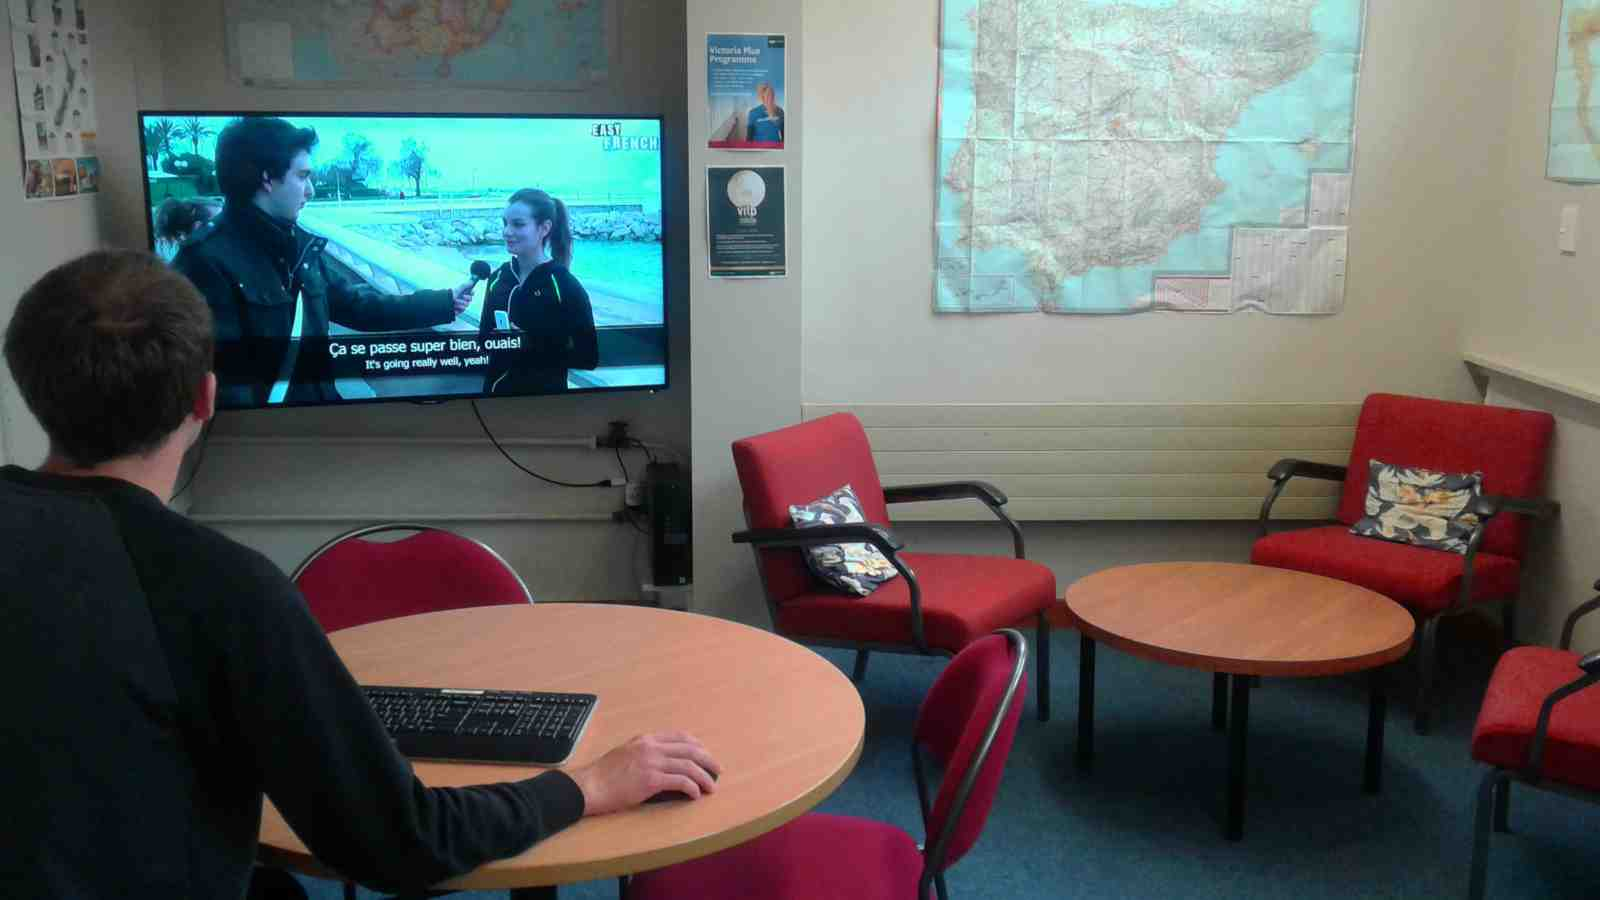 A student in a map room works at a table with a keyboard and mouse controlling a wall mounted television.